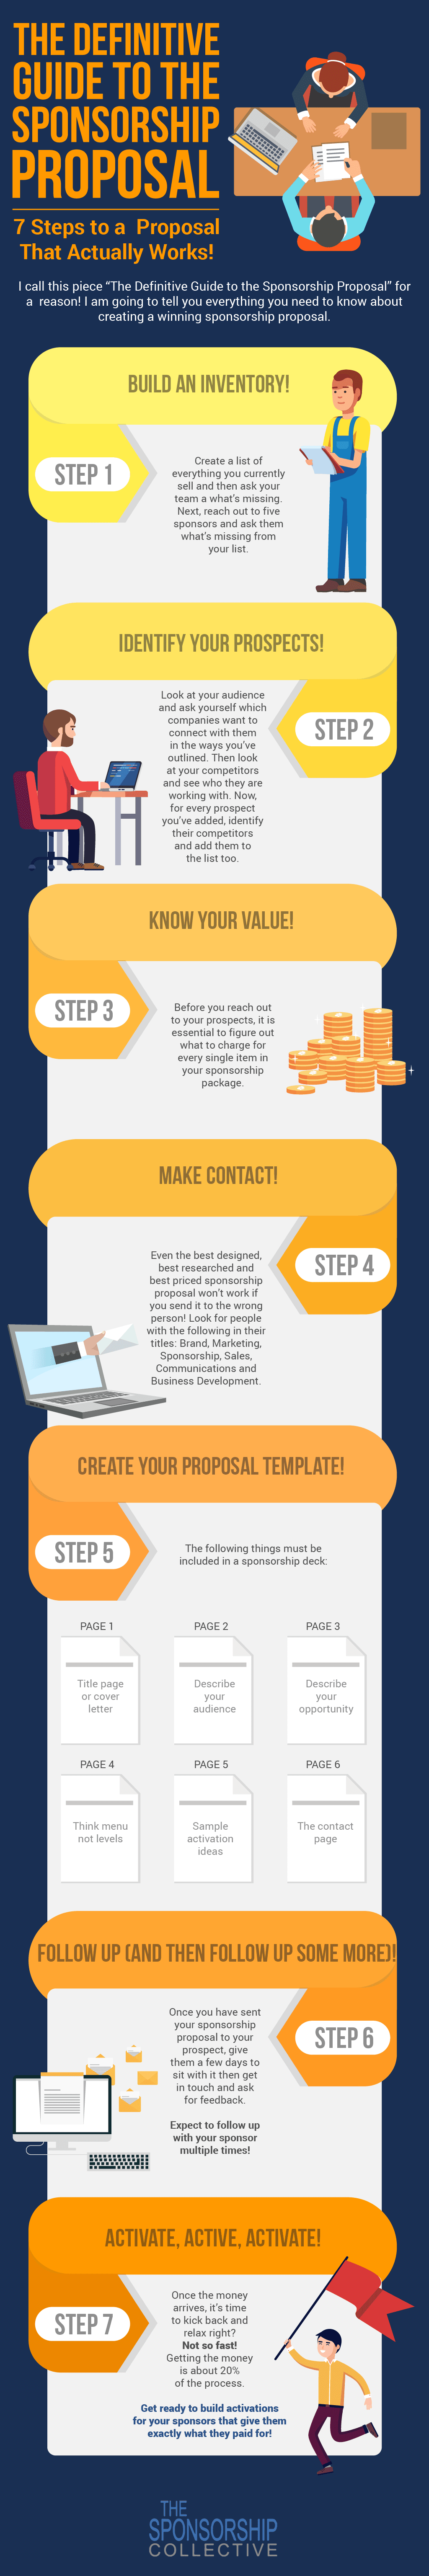 Sponsorship Proposal Infographic